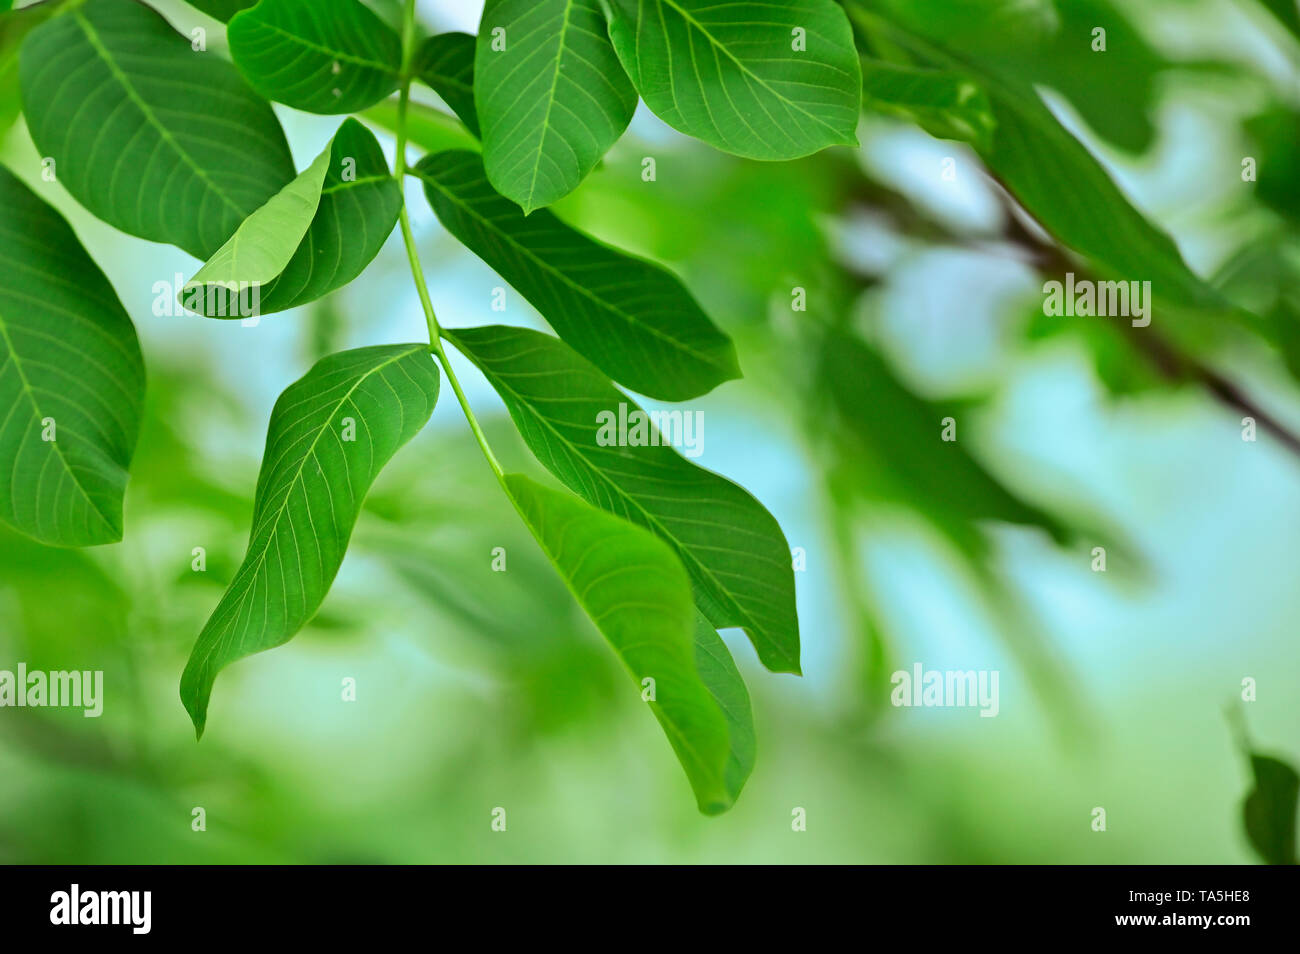 Walnut Leaves Isolated in garden - Stock Image